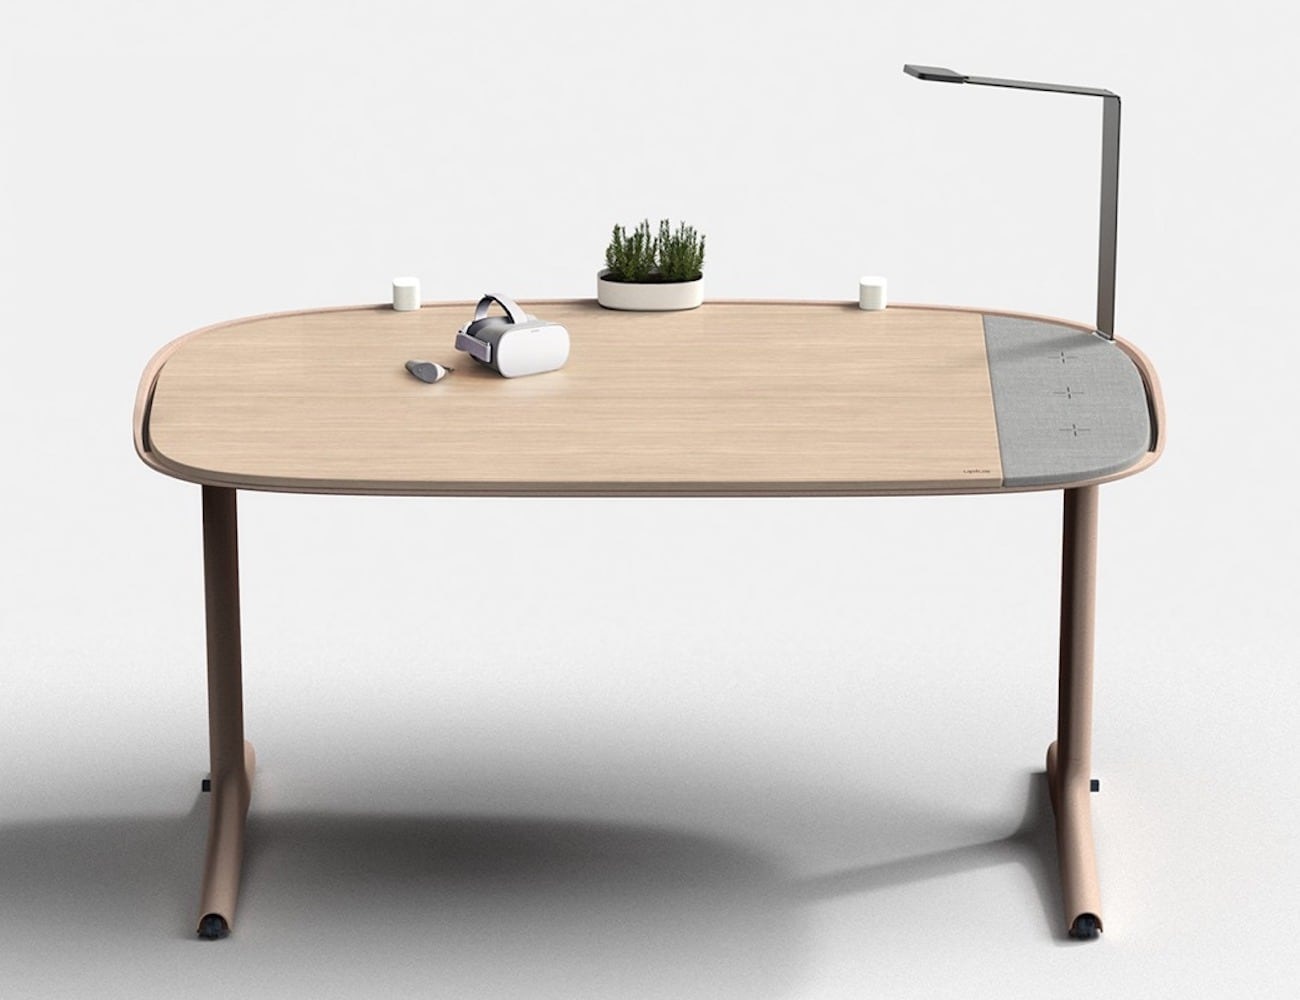 Uplus Modular Office System helps you enjoy being at your desk